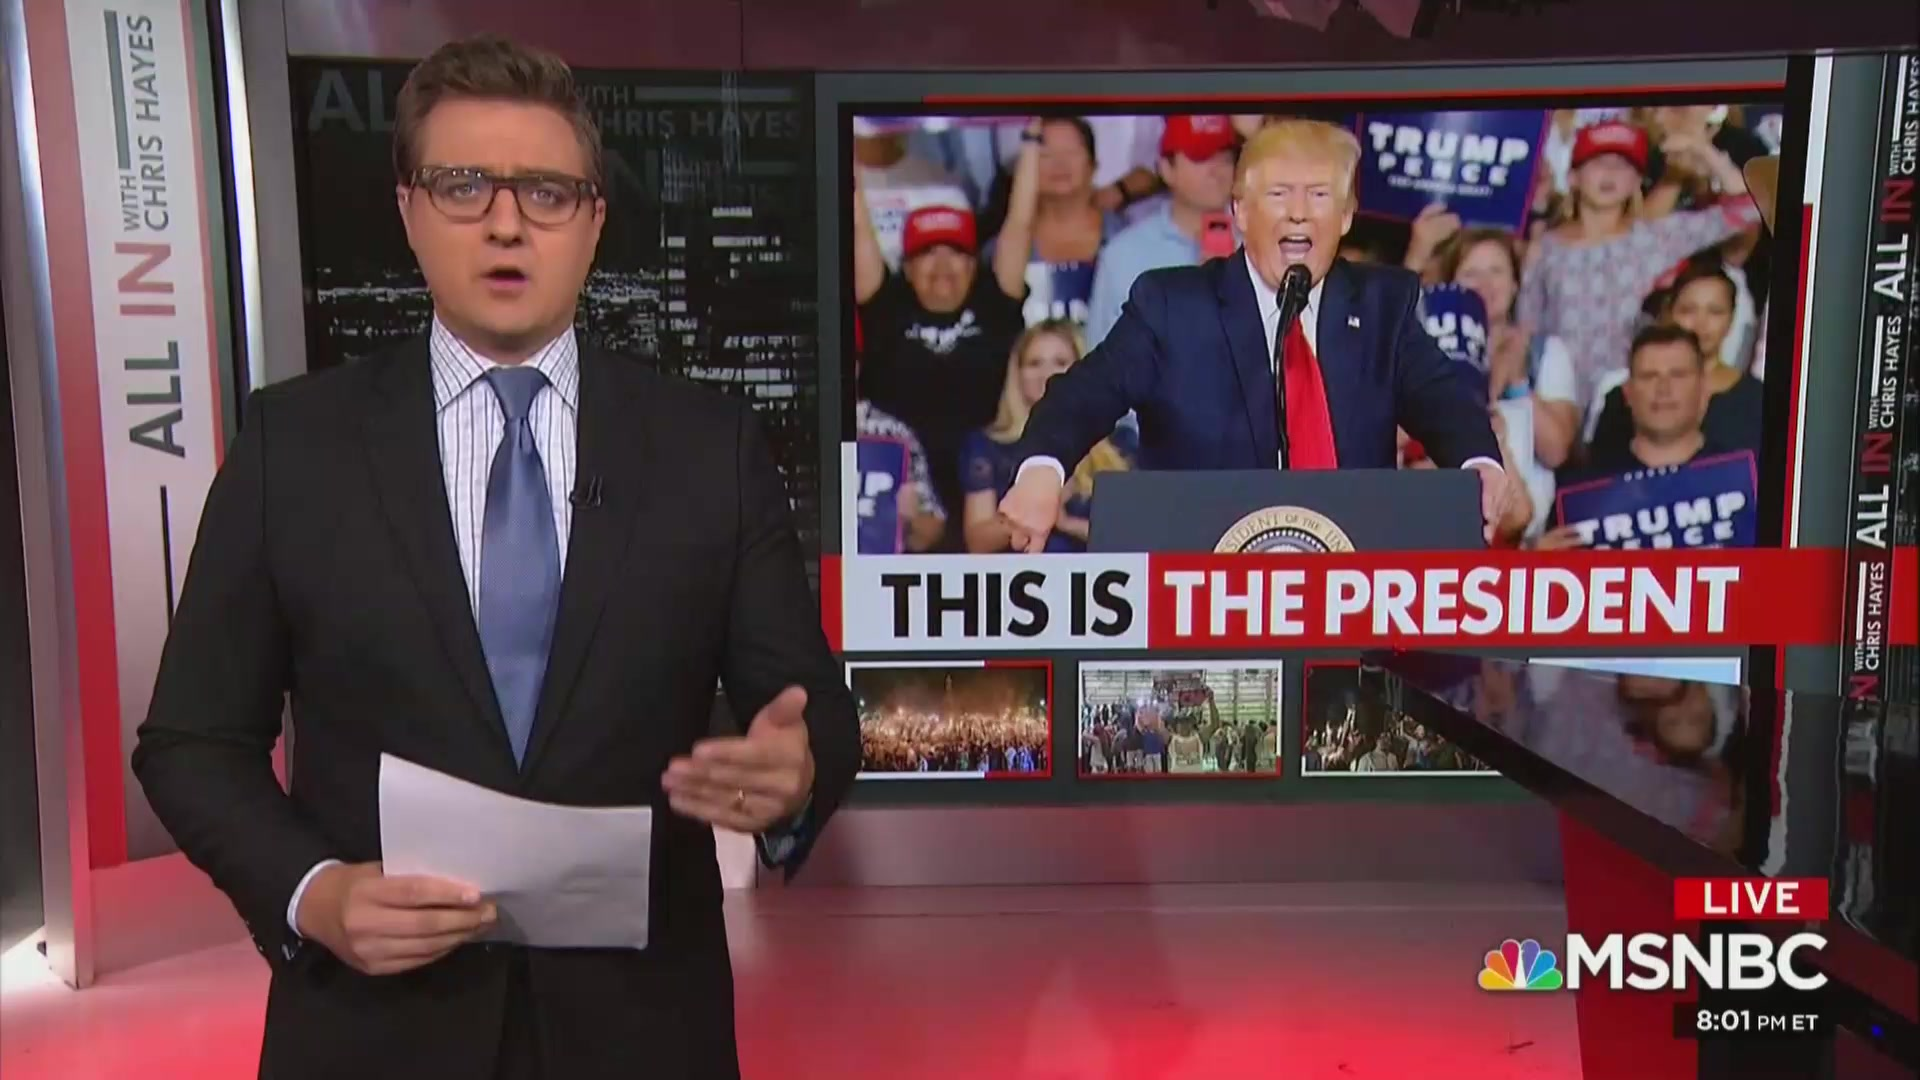 Chris Hayes: Trump and Republicans 'Have Disqualified Themselves From Support of Decent People'